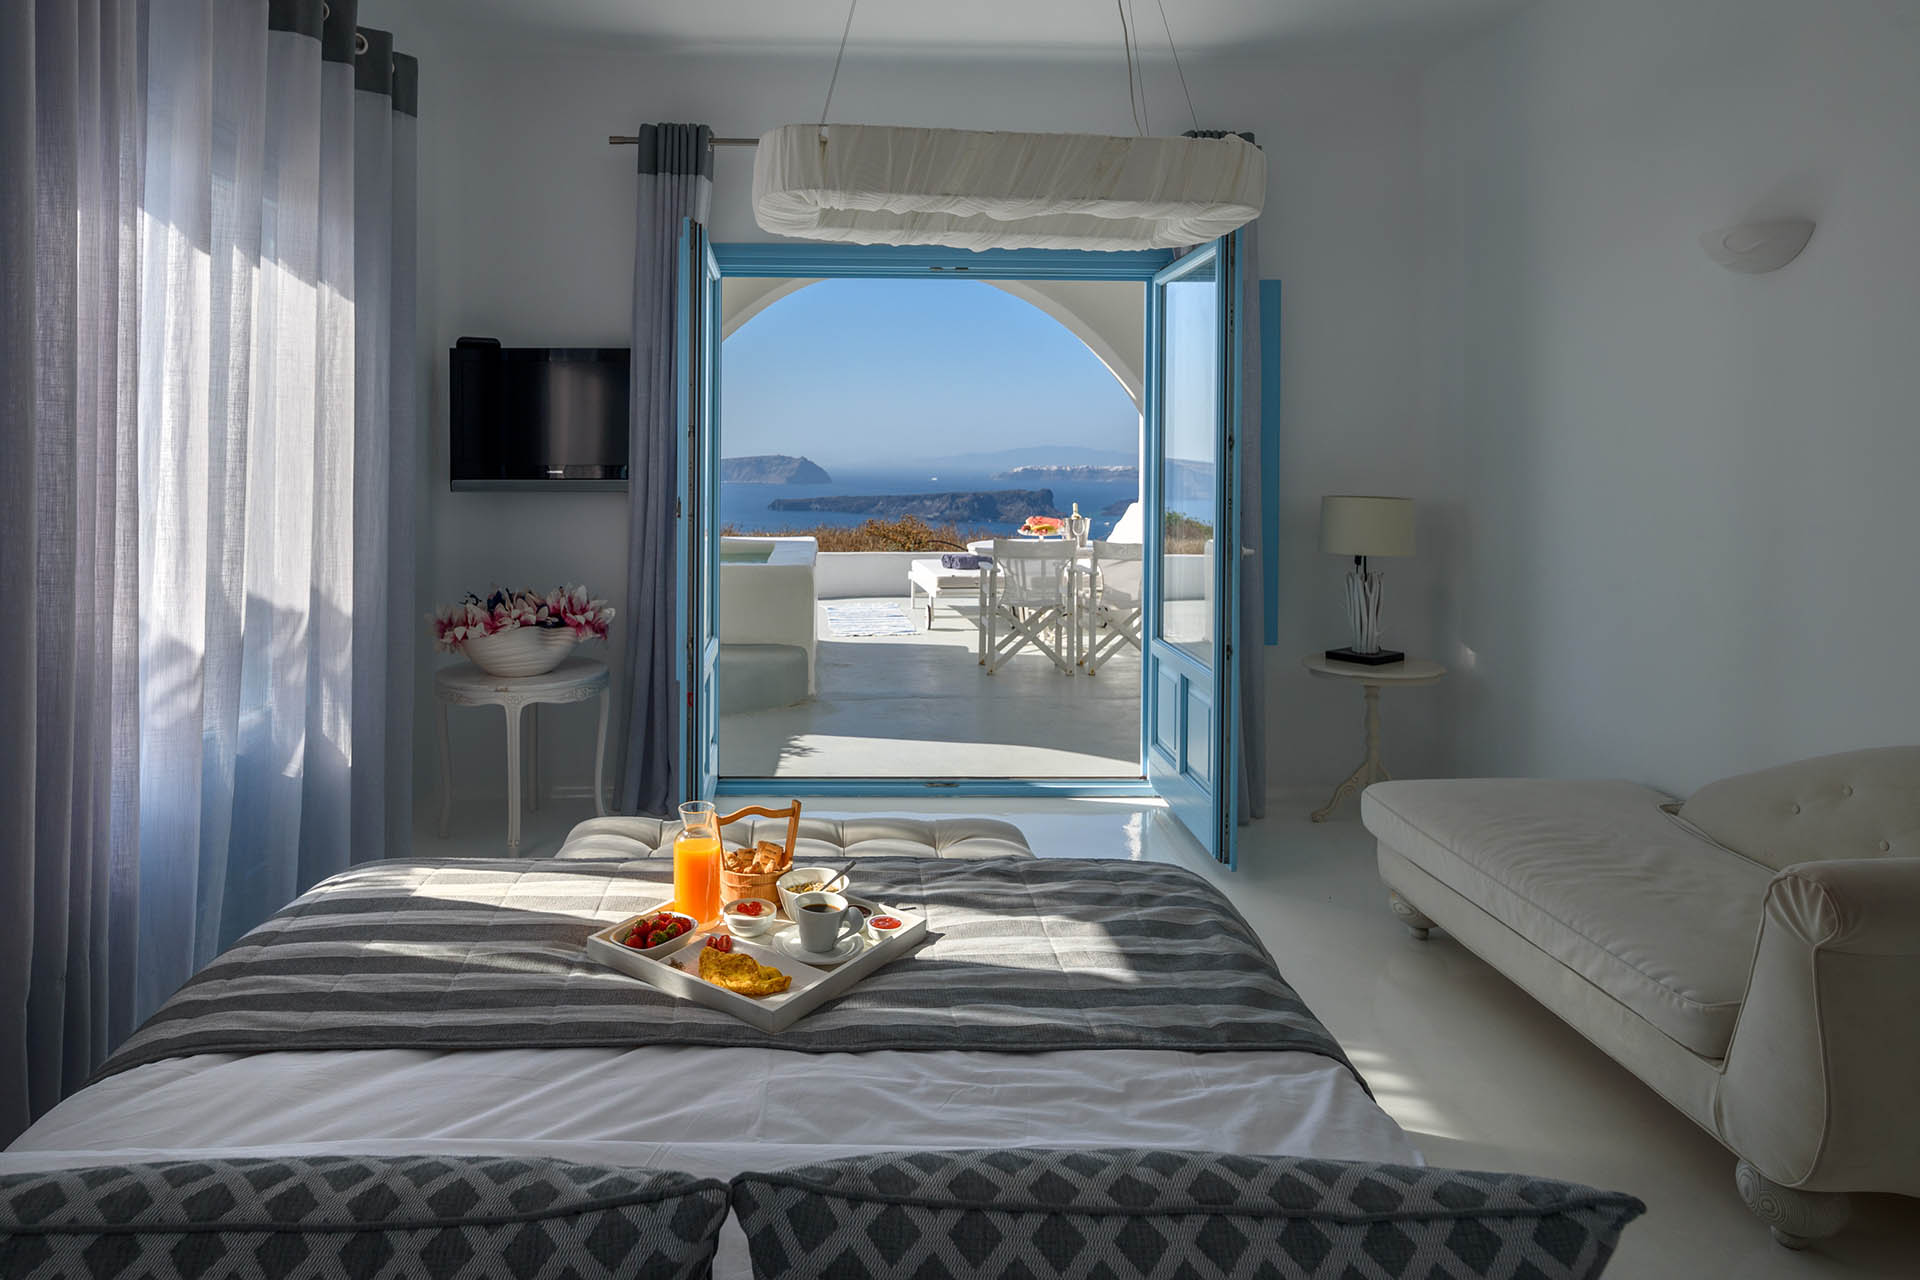 Kalestesia Suites - Deluxe Suite with caldera views